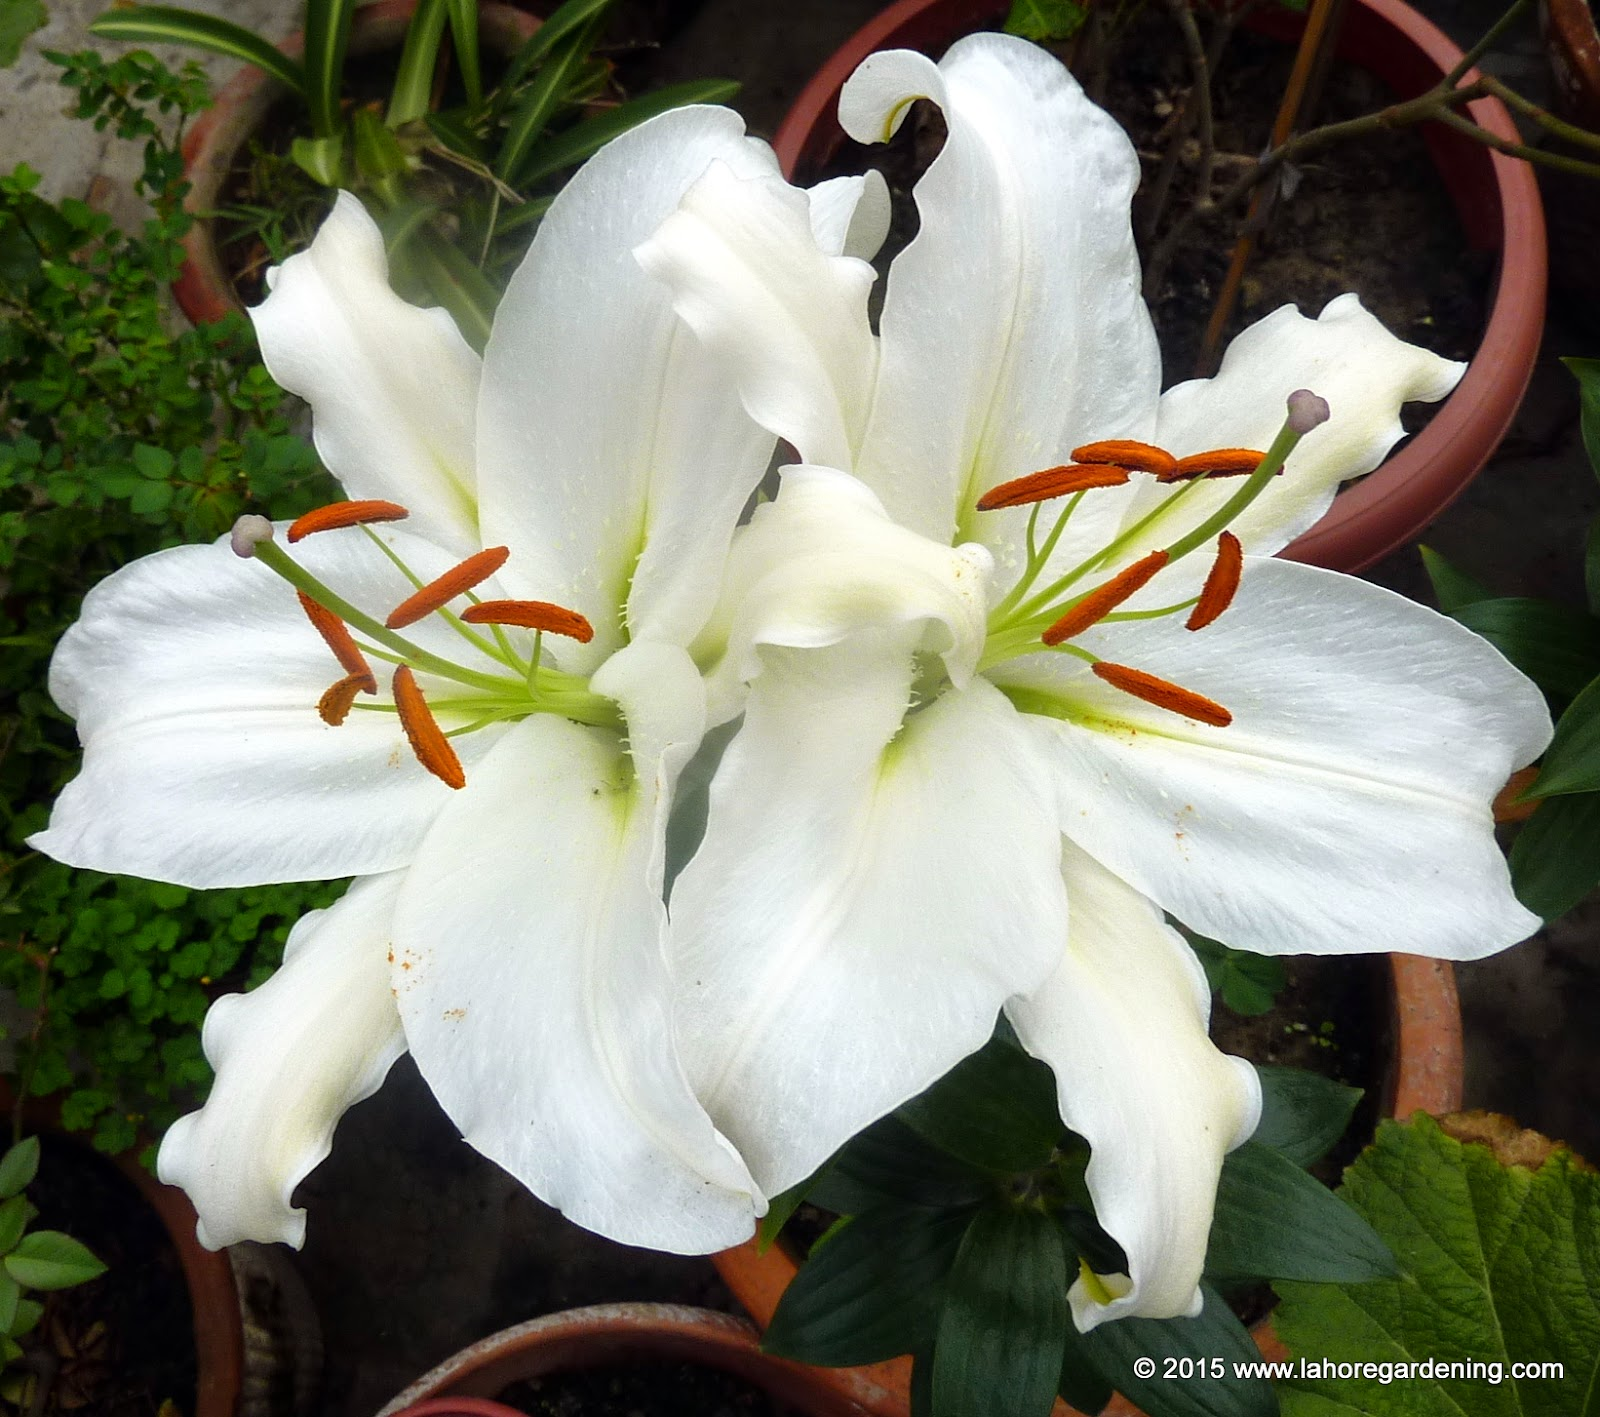 Growing flowering bulbs in warm climates oriental lily 6 one bulb will produce around 3 7 flowers give it a little liquid fertilizer when buds appear izmirmasajfo Images